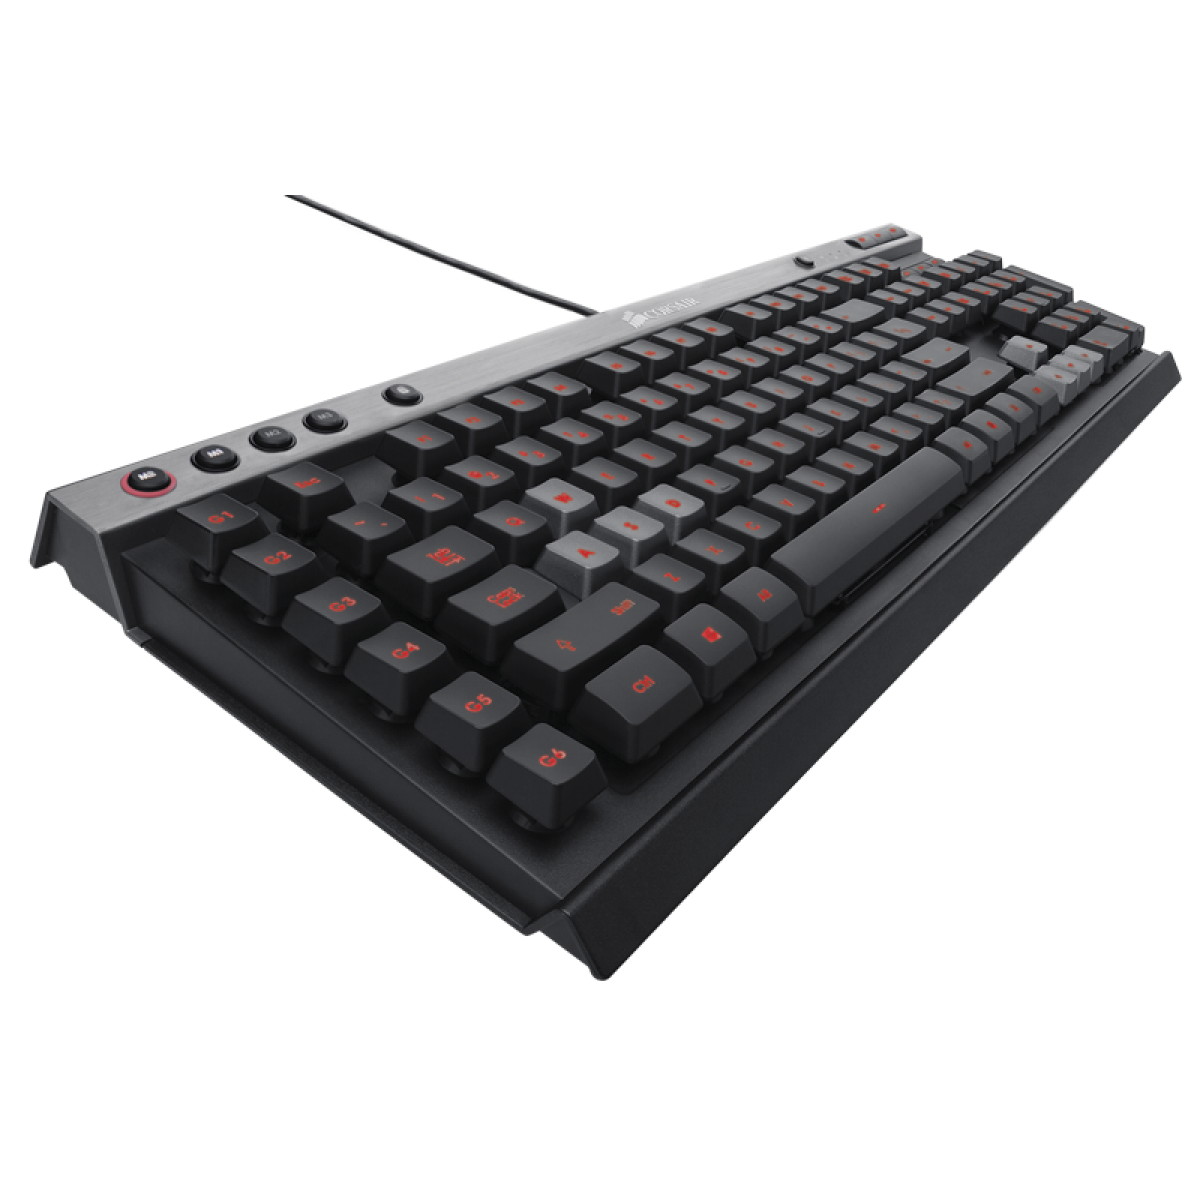 Teclado Gamer Corsair Raptor K40 Multi Color Backlighting, CH-9000051-NA